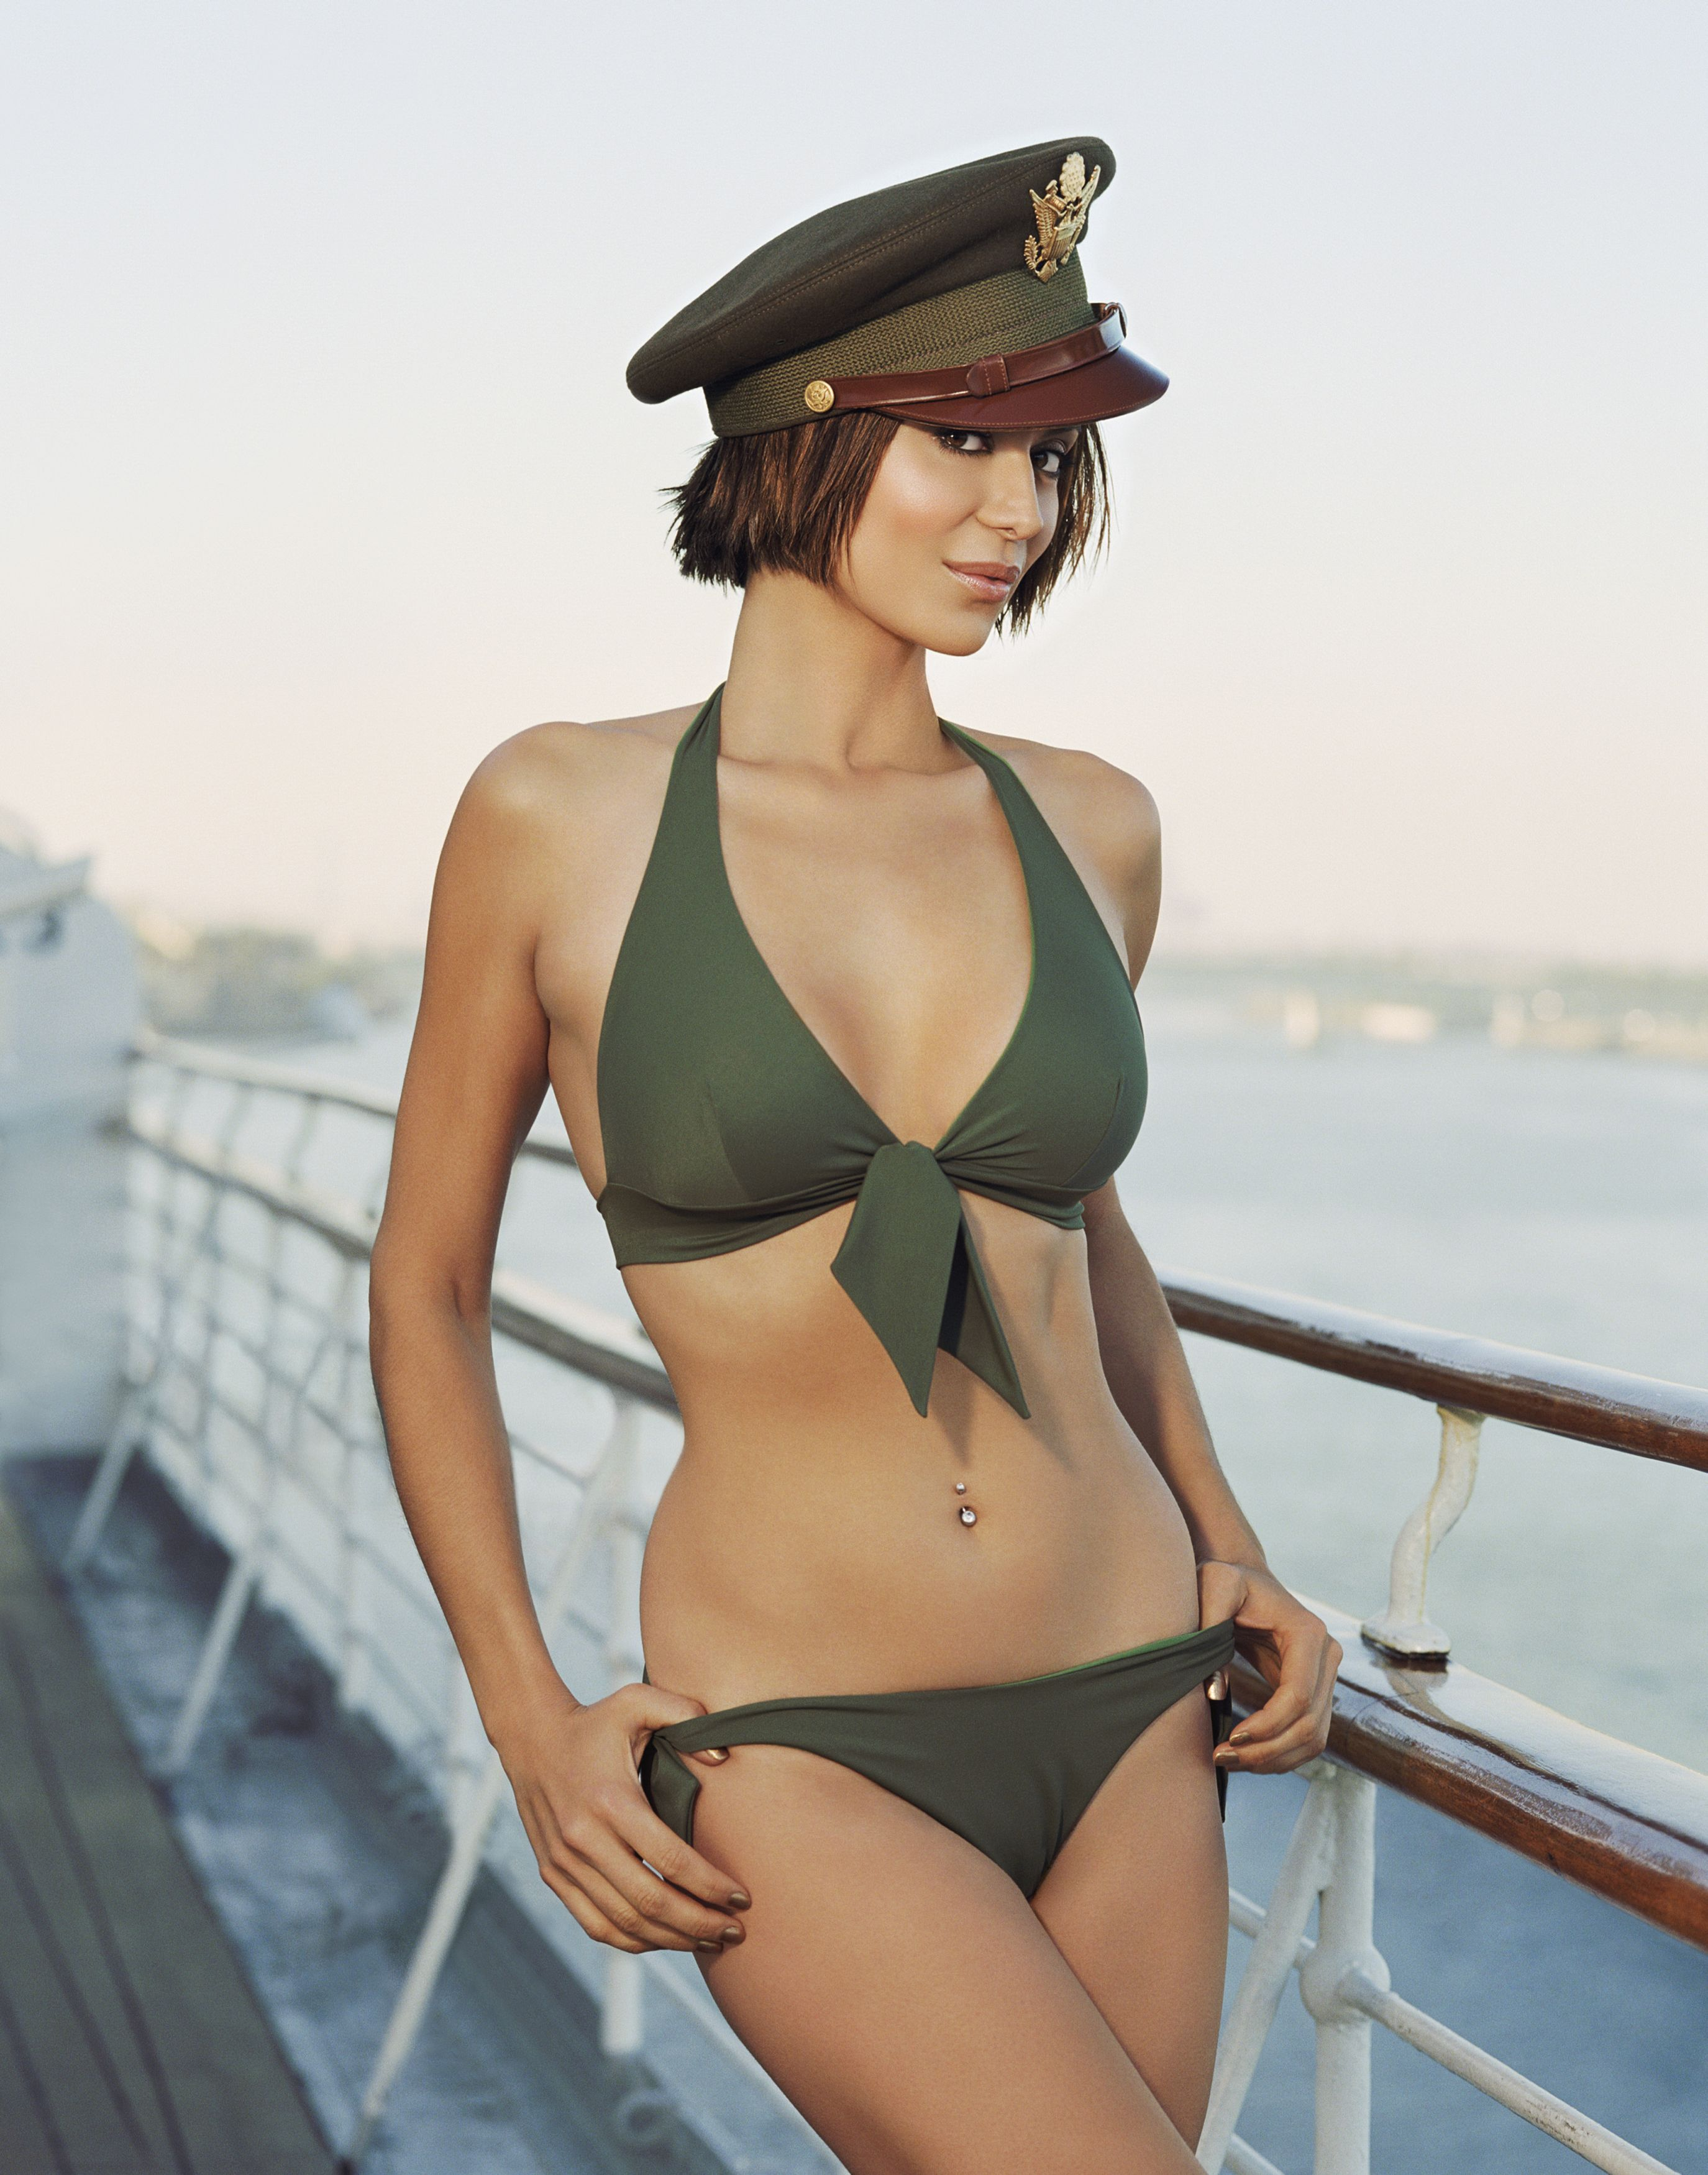 57107_Catherine-Bell-sexy-246601_122_438lo.jpg